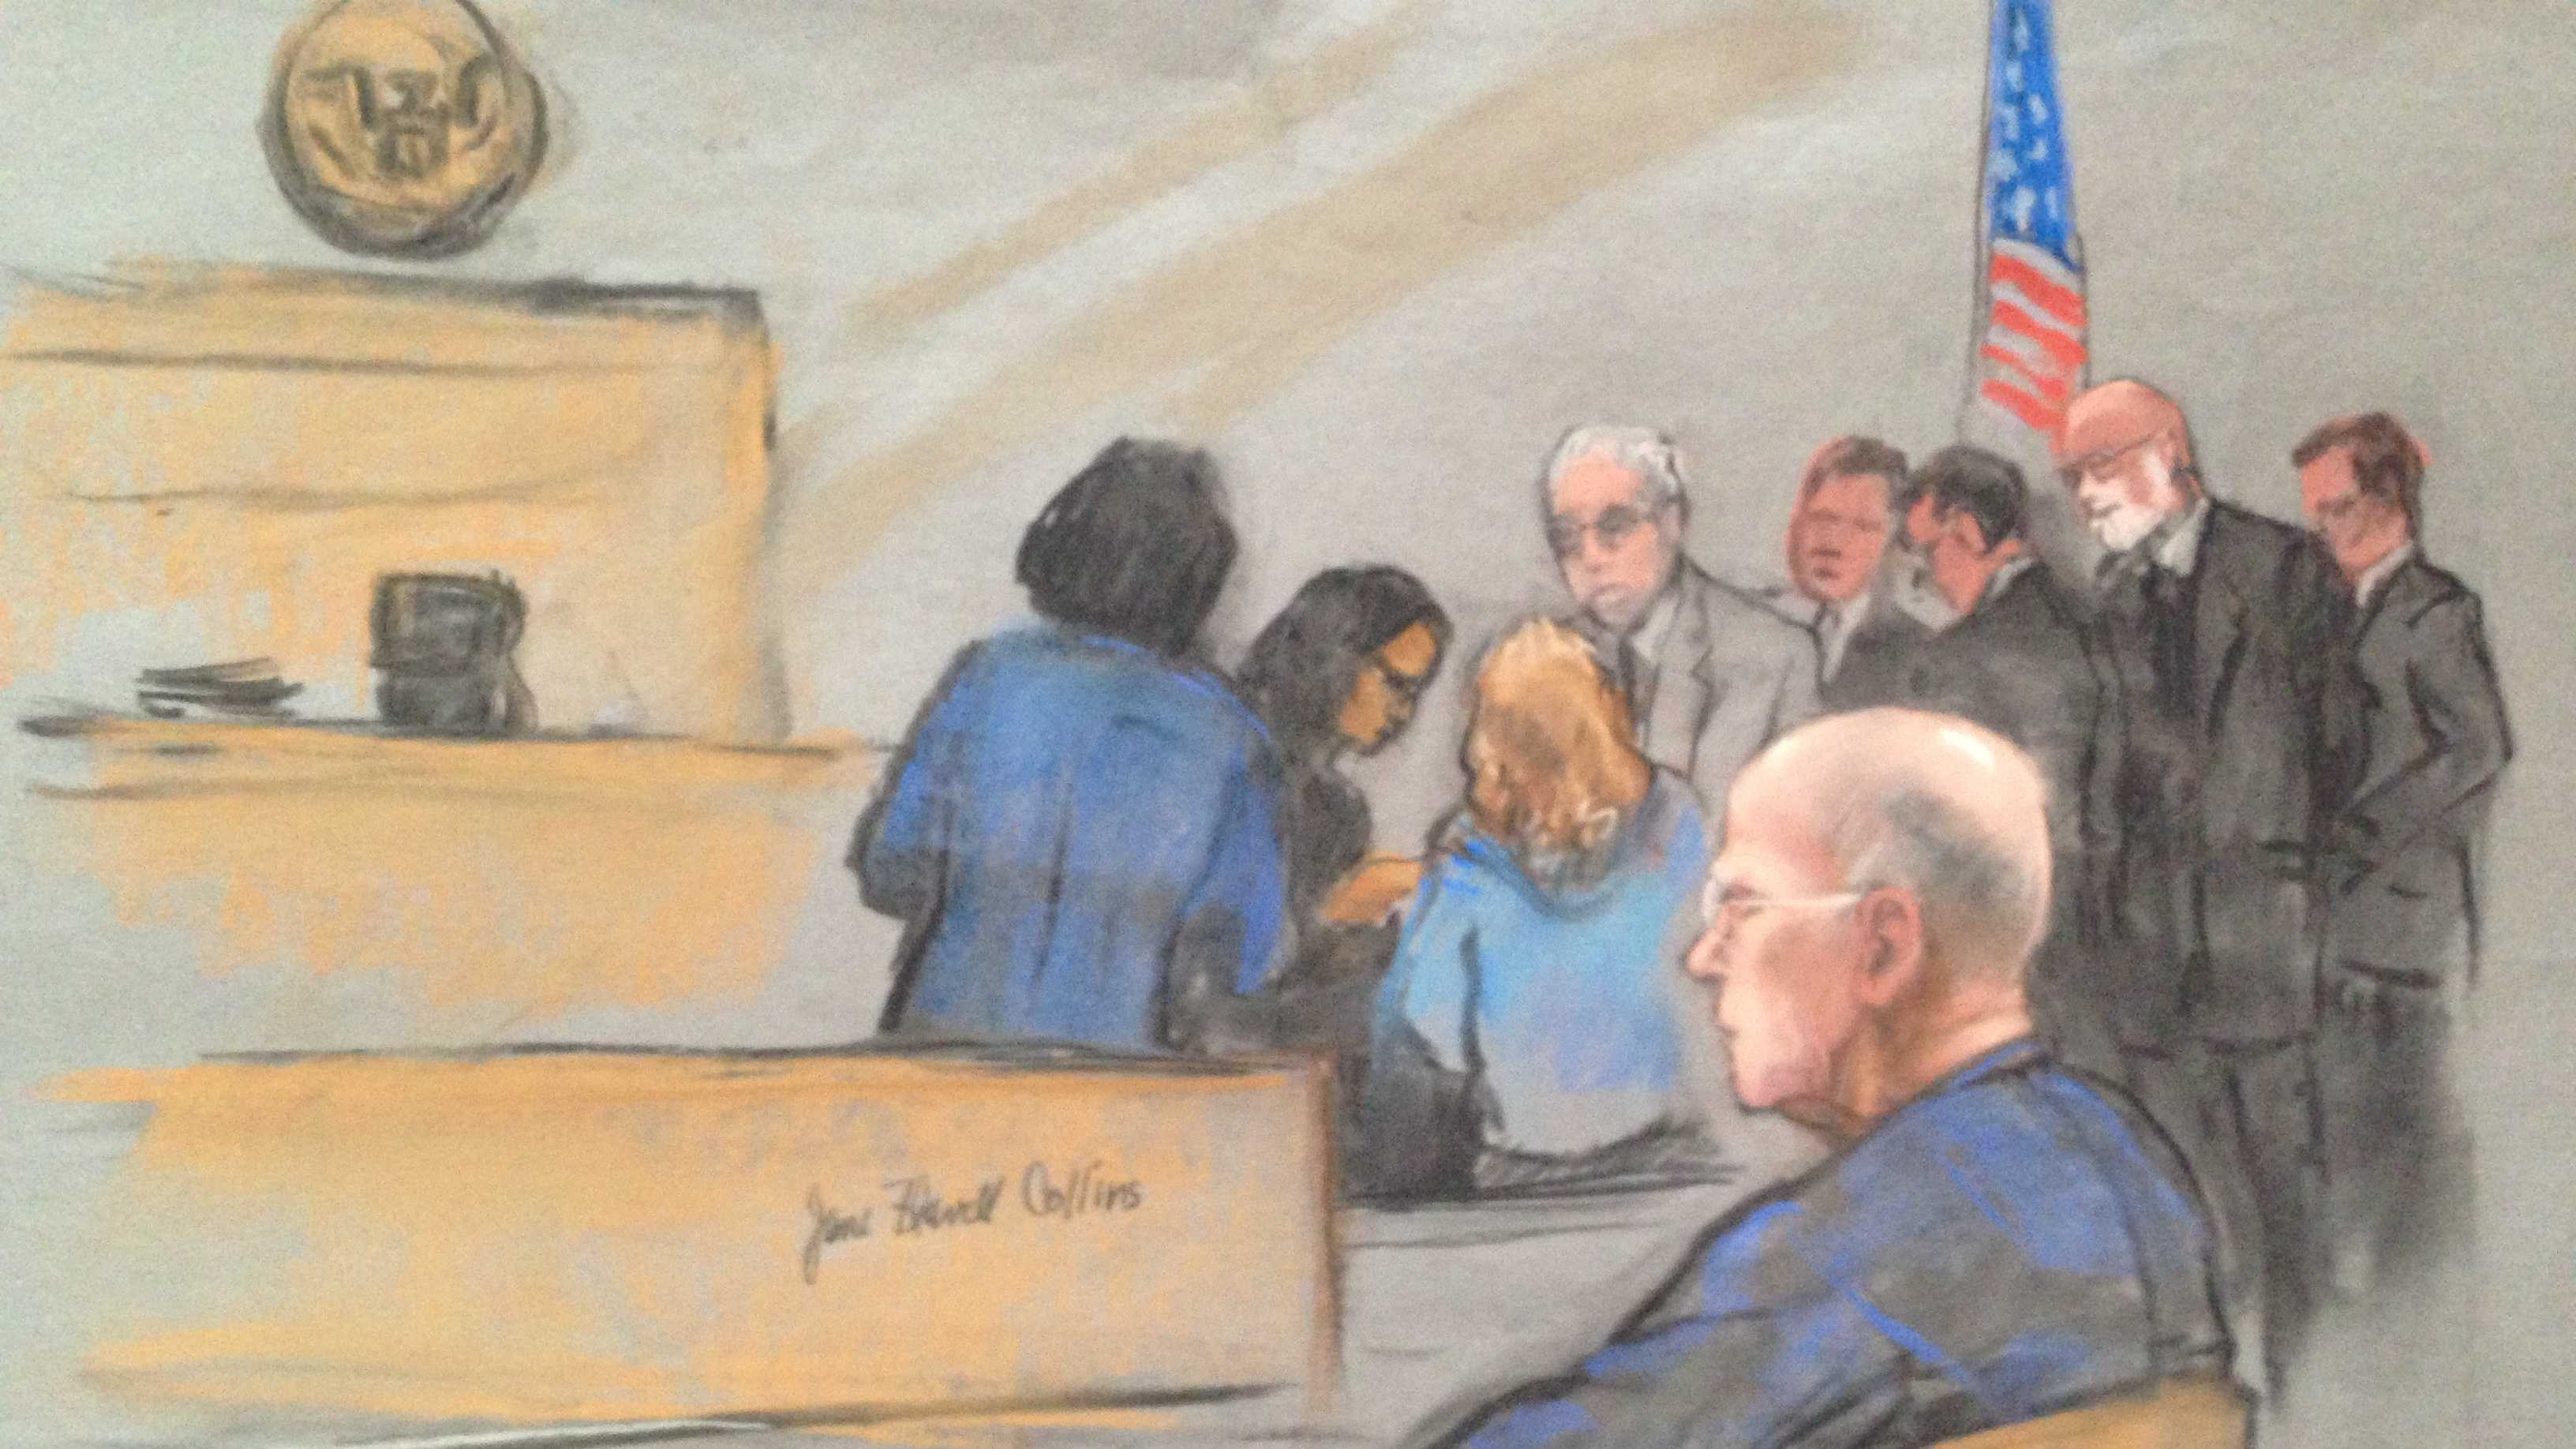 Bulger court sketch 6.11